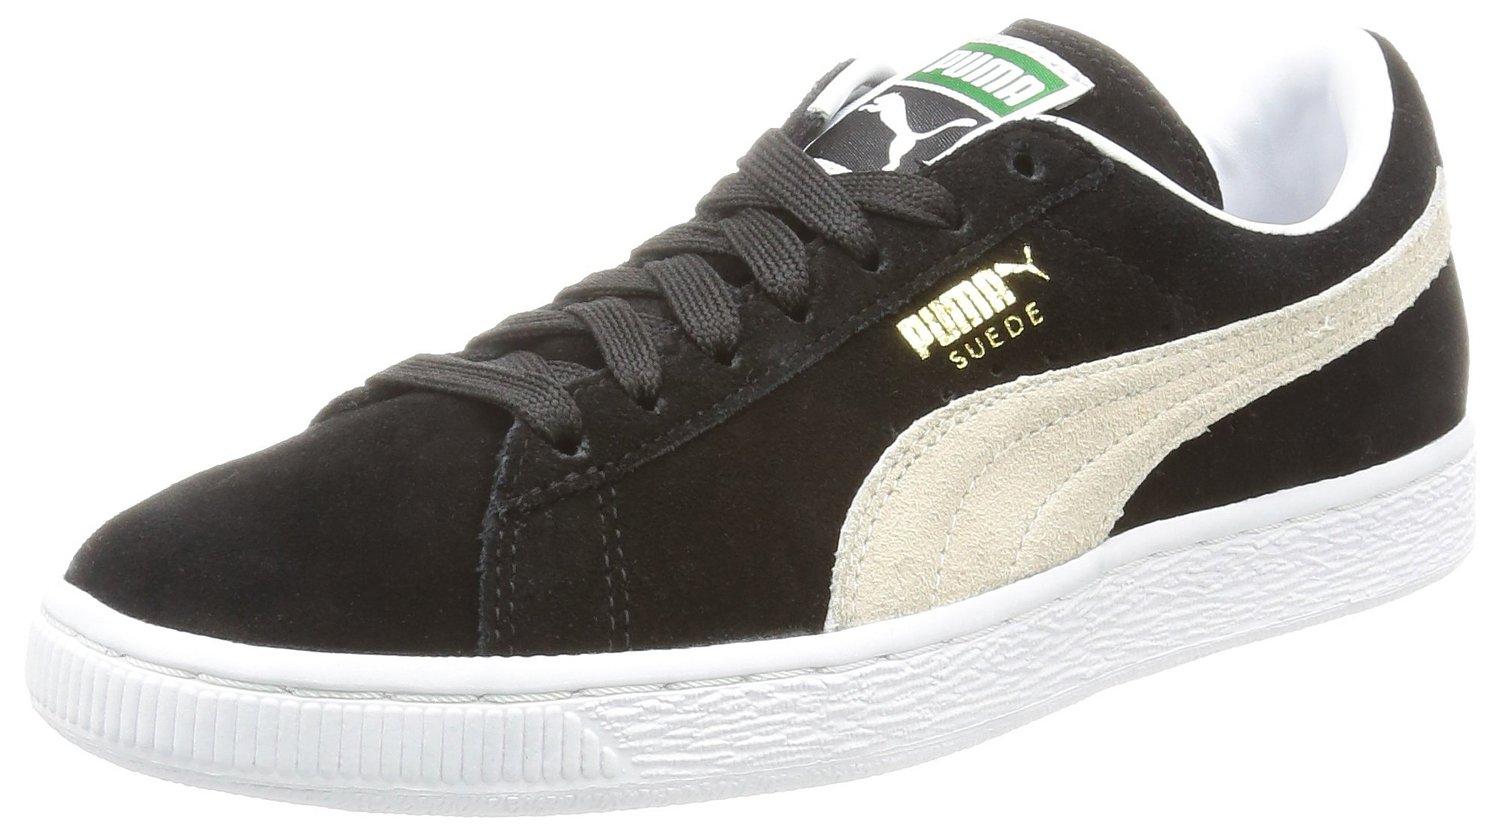 6584eb0d483 Buy PUMA Adult Suede Classic Shoe in Cheap Price on m.alibaba.com